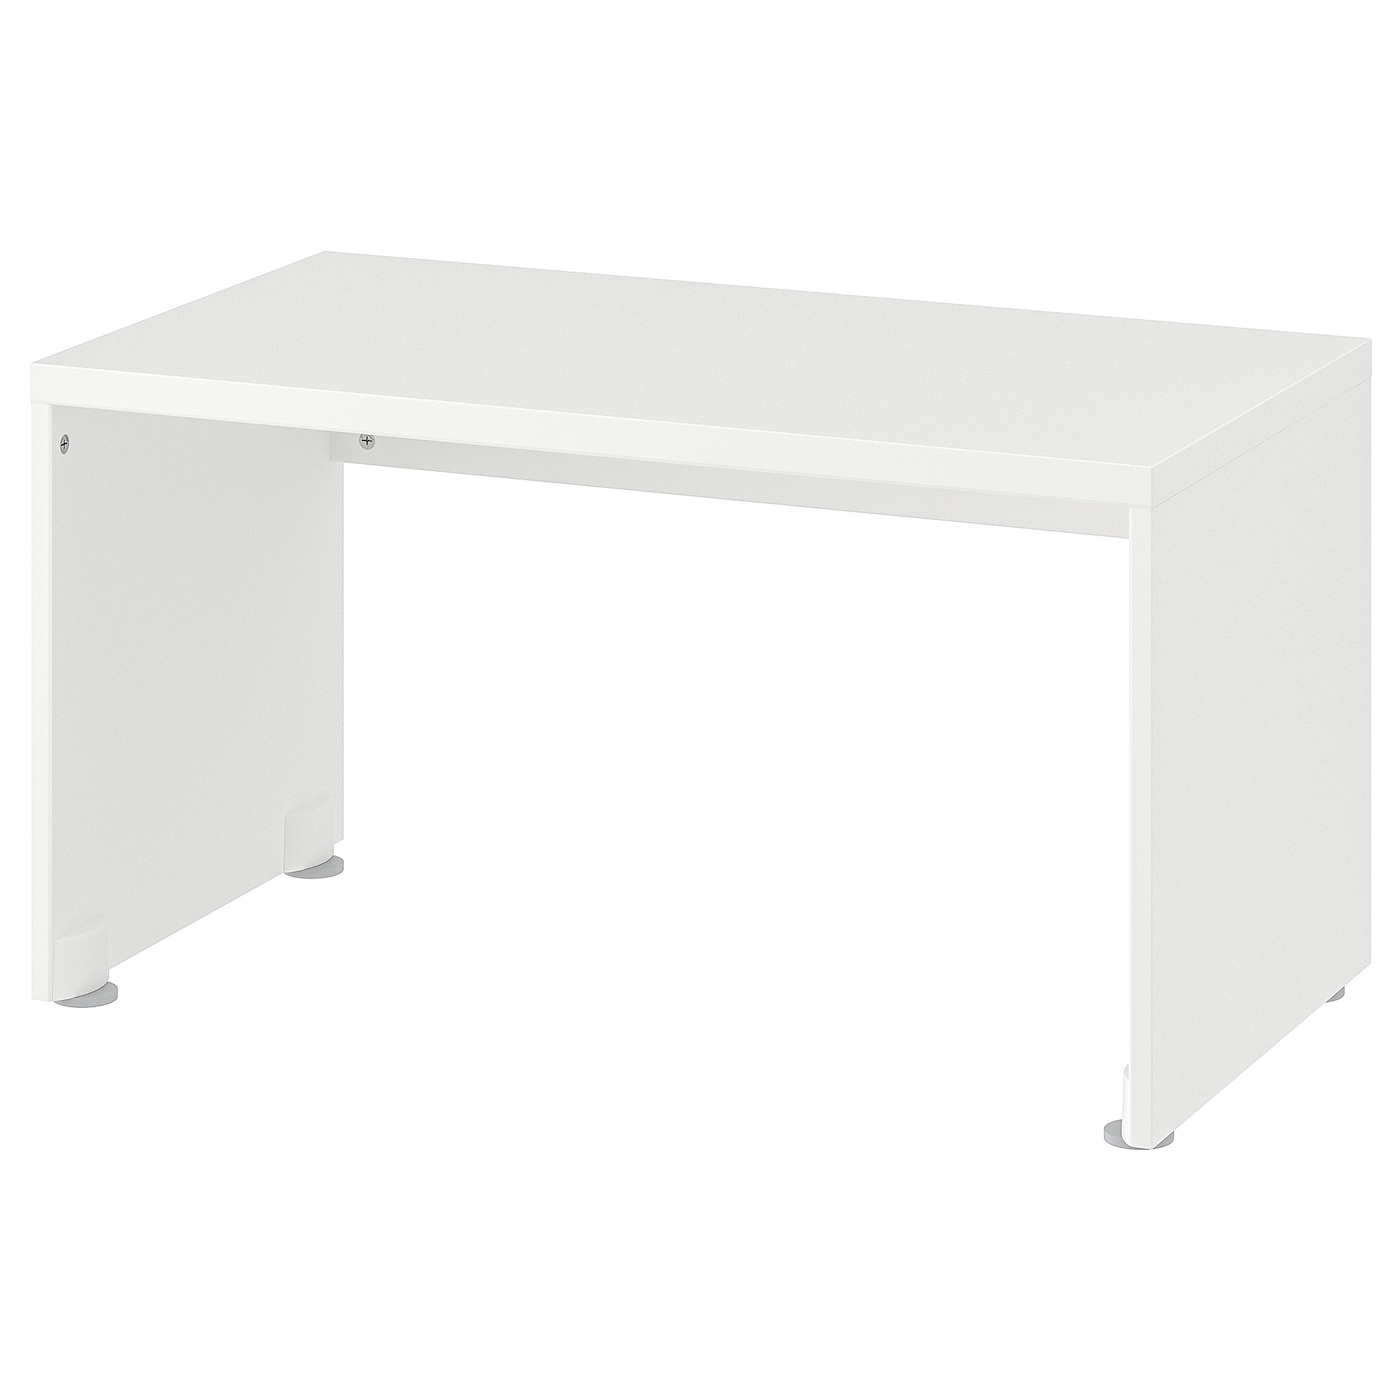 IKEA STUVA bench Stands steady also on uneven floors since adjustable feet are included.